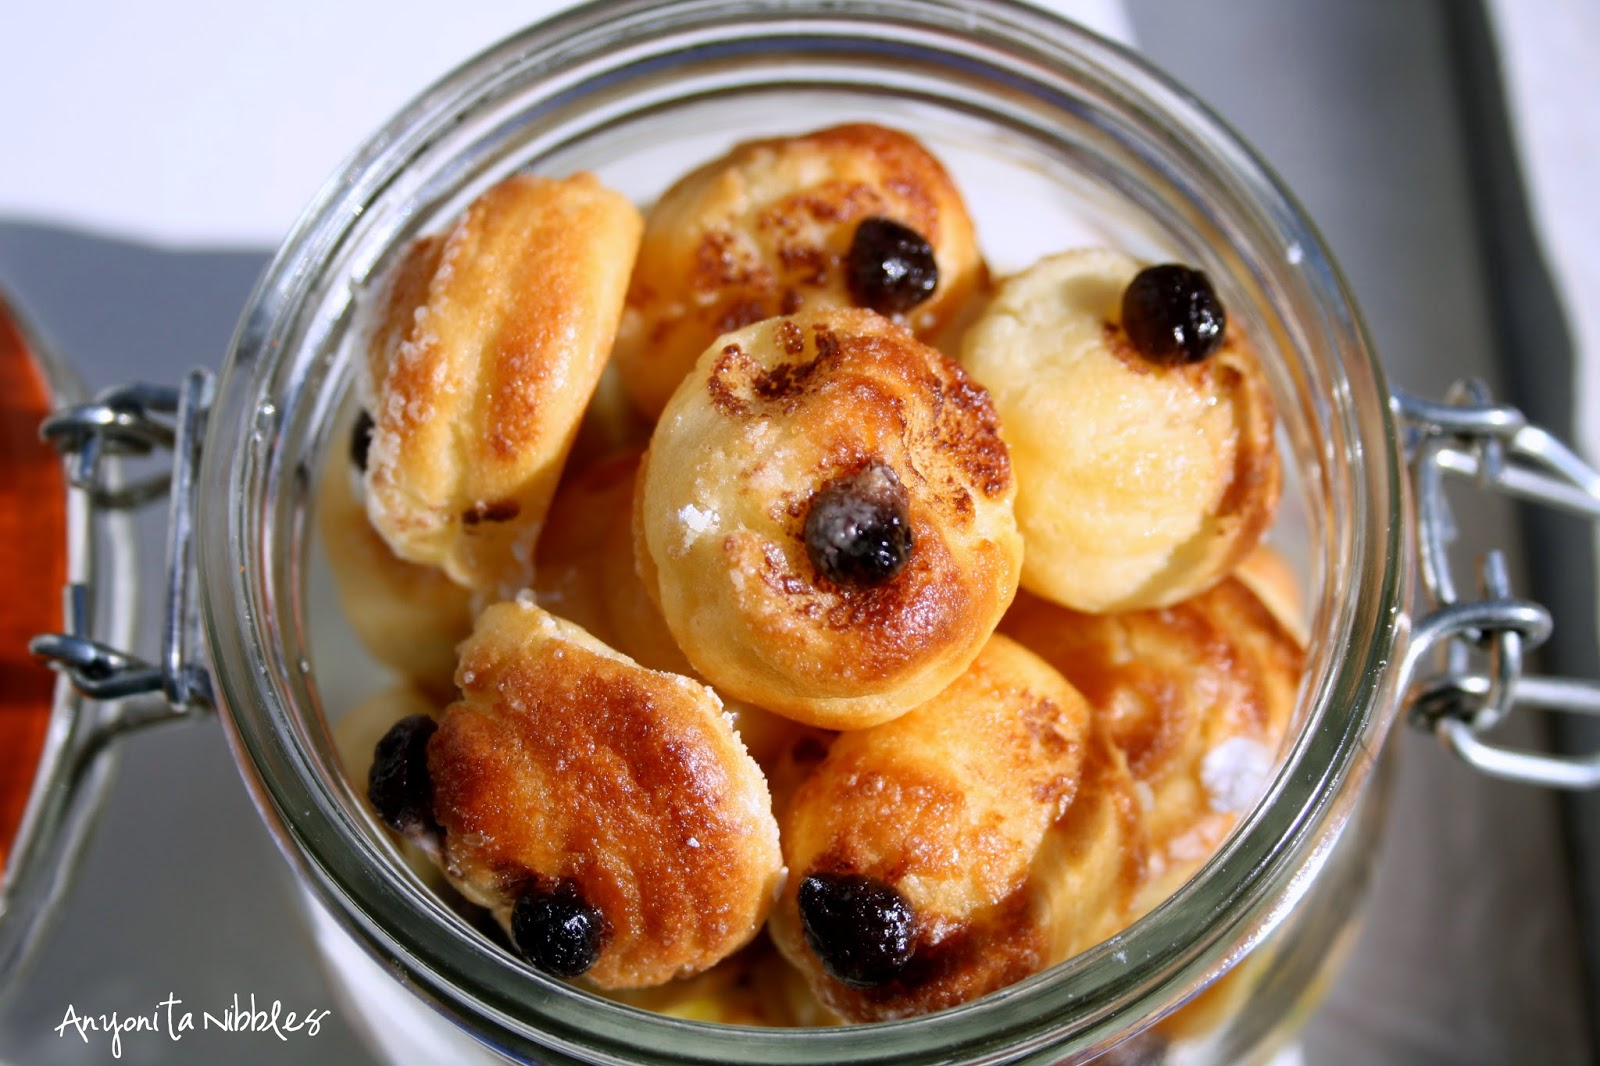 A jar of chocolate chip, gluten free chouquetts from Anyonita Nibbles